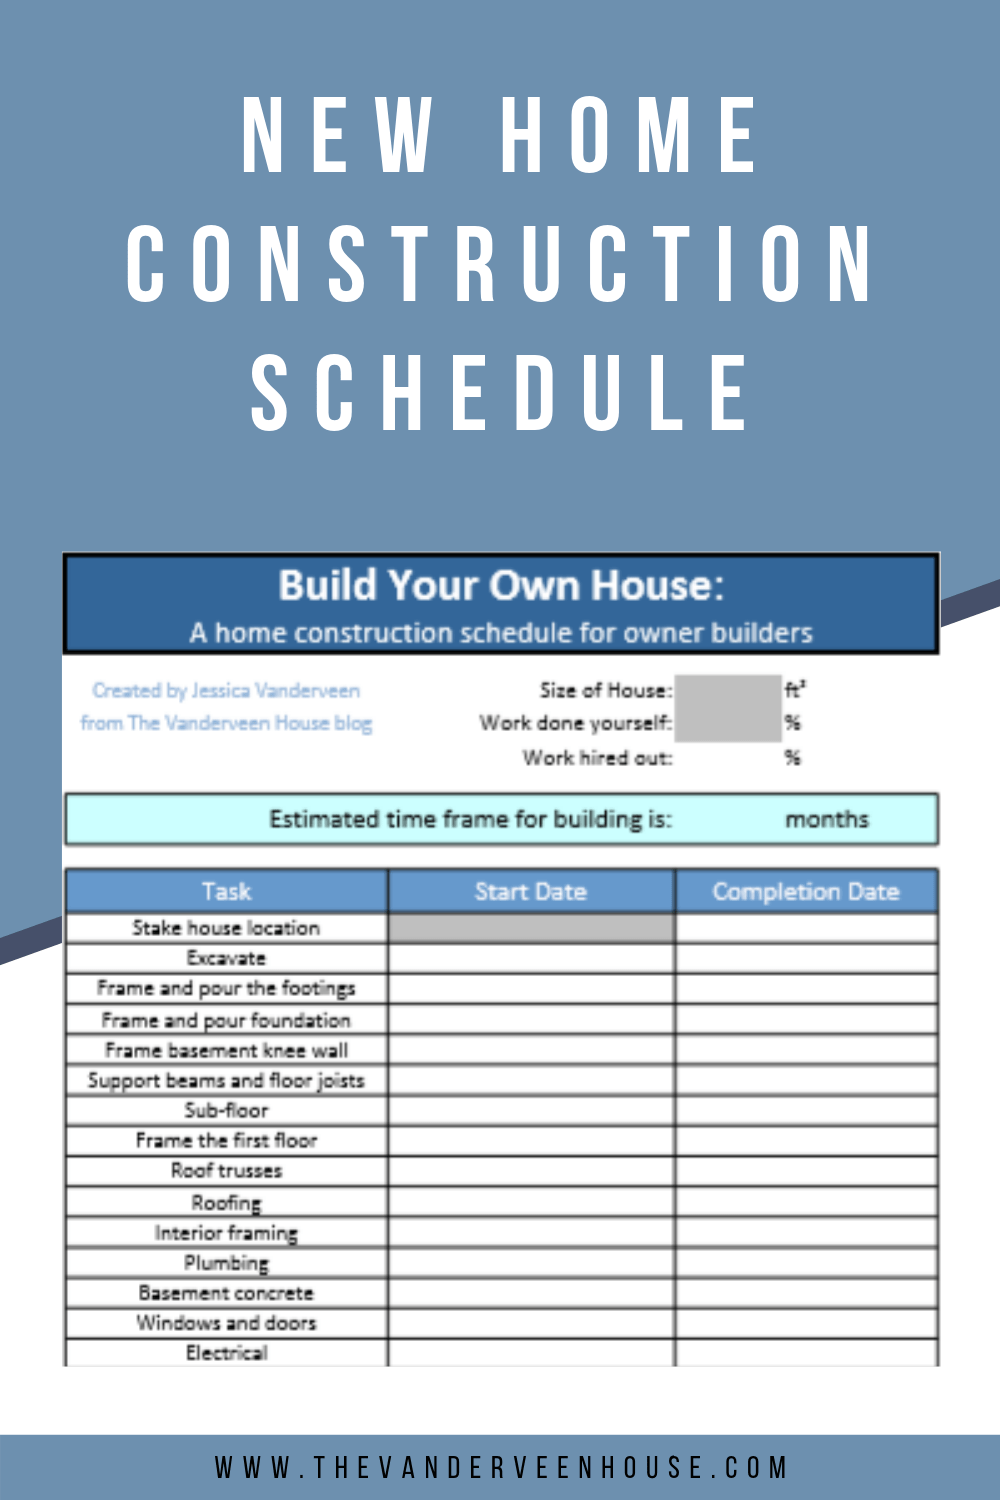 House Construction Schedule For Owner Builders In 2020 With